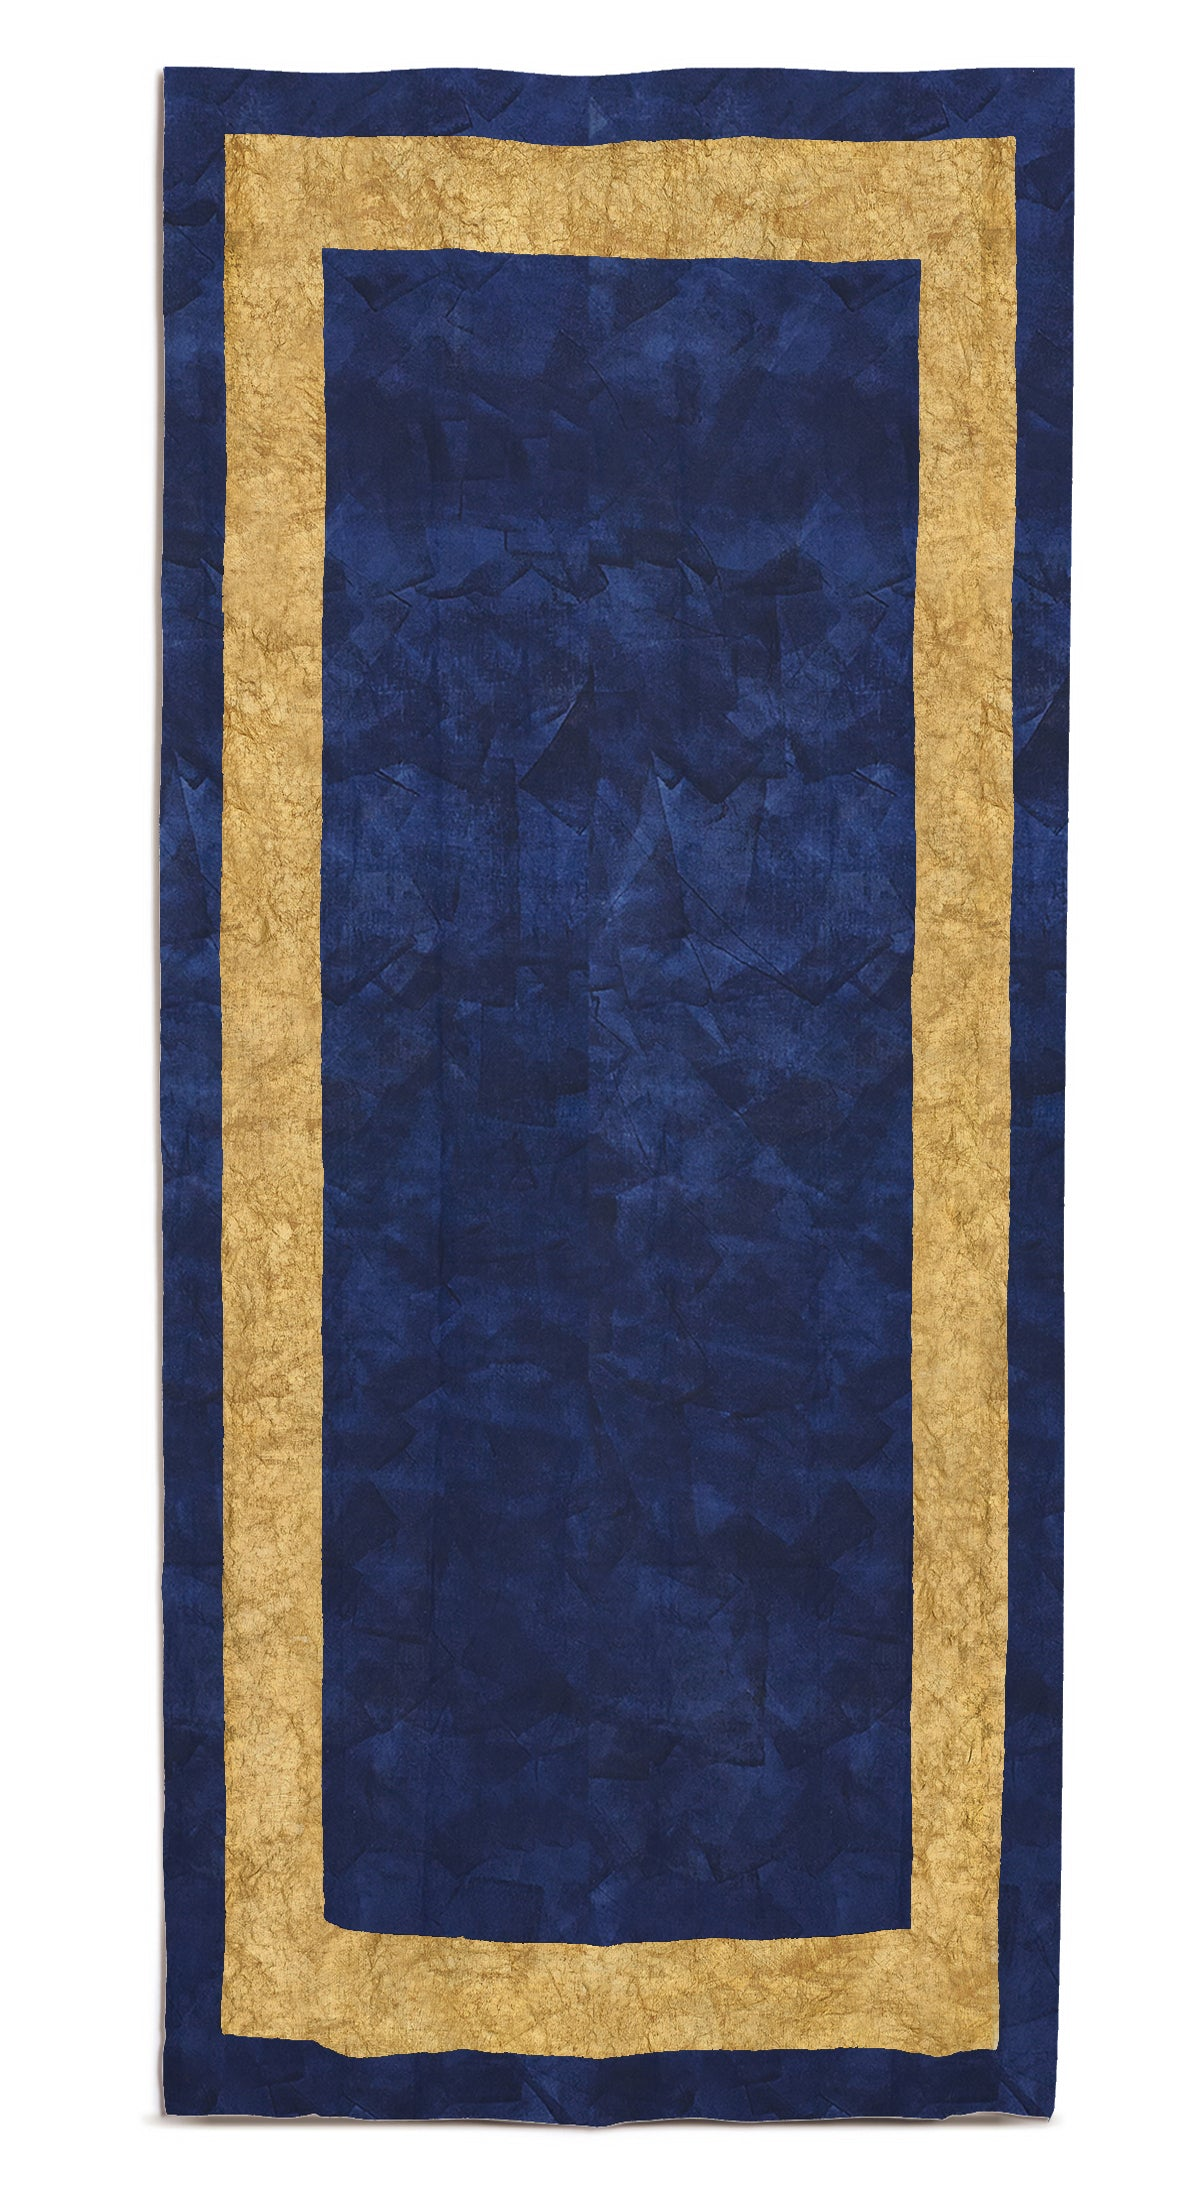 Full Field Cornice Linen Tablecloth in Midnight Blue & Gold